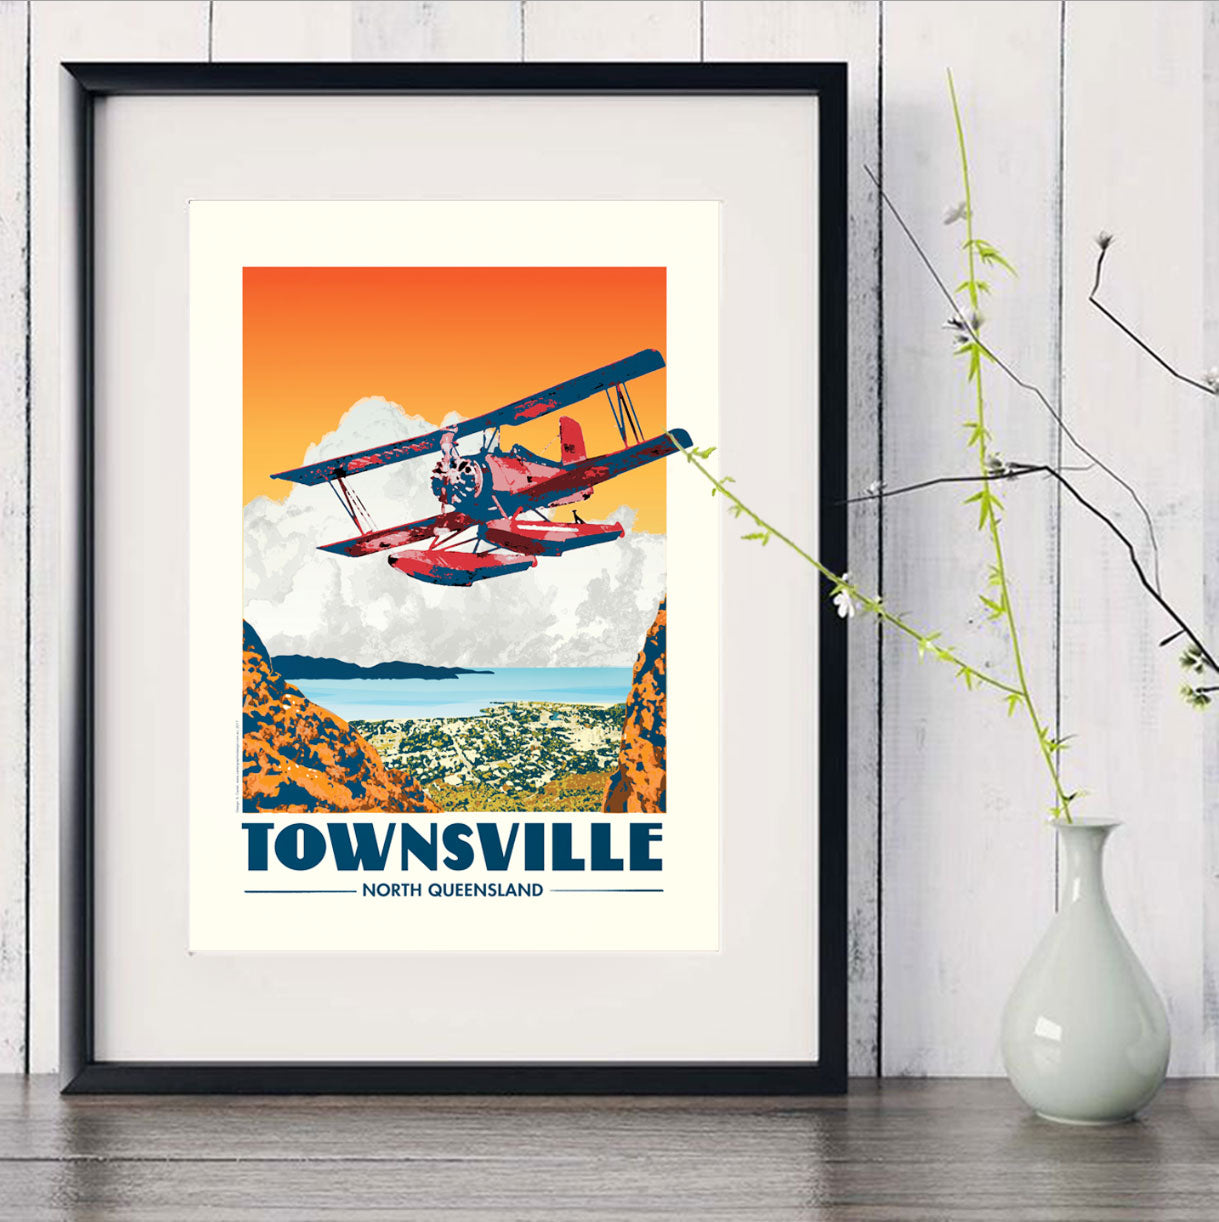 Townsville Red Baron flying over Castle Hill art print in black frame with white vase